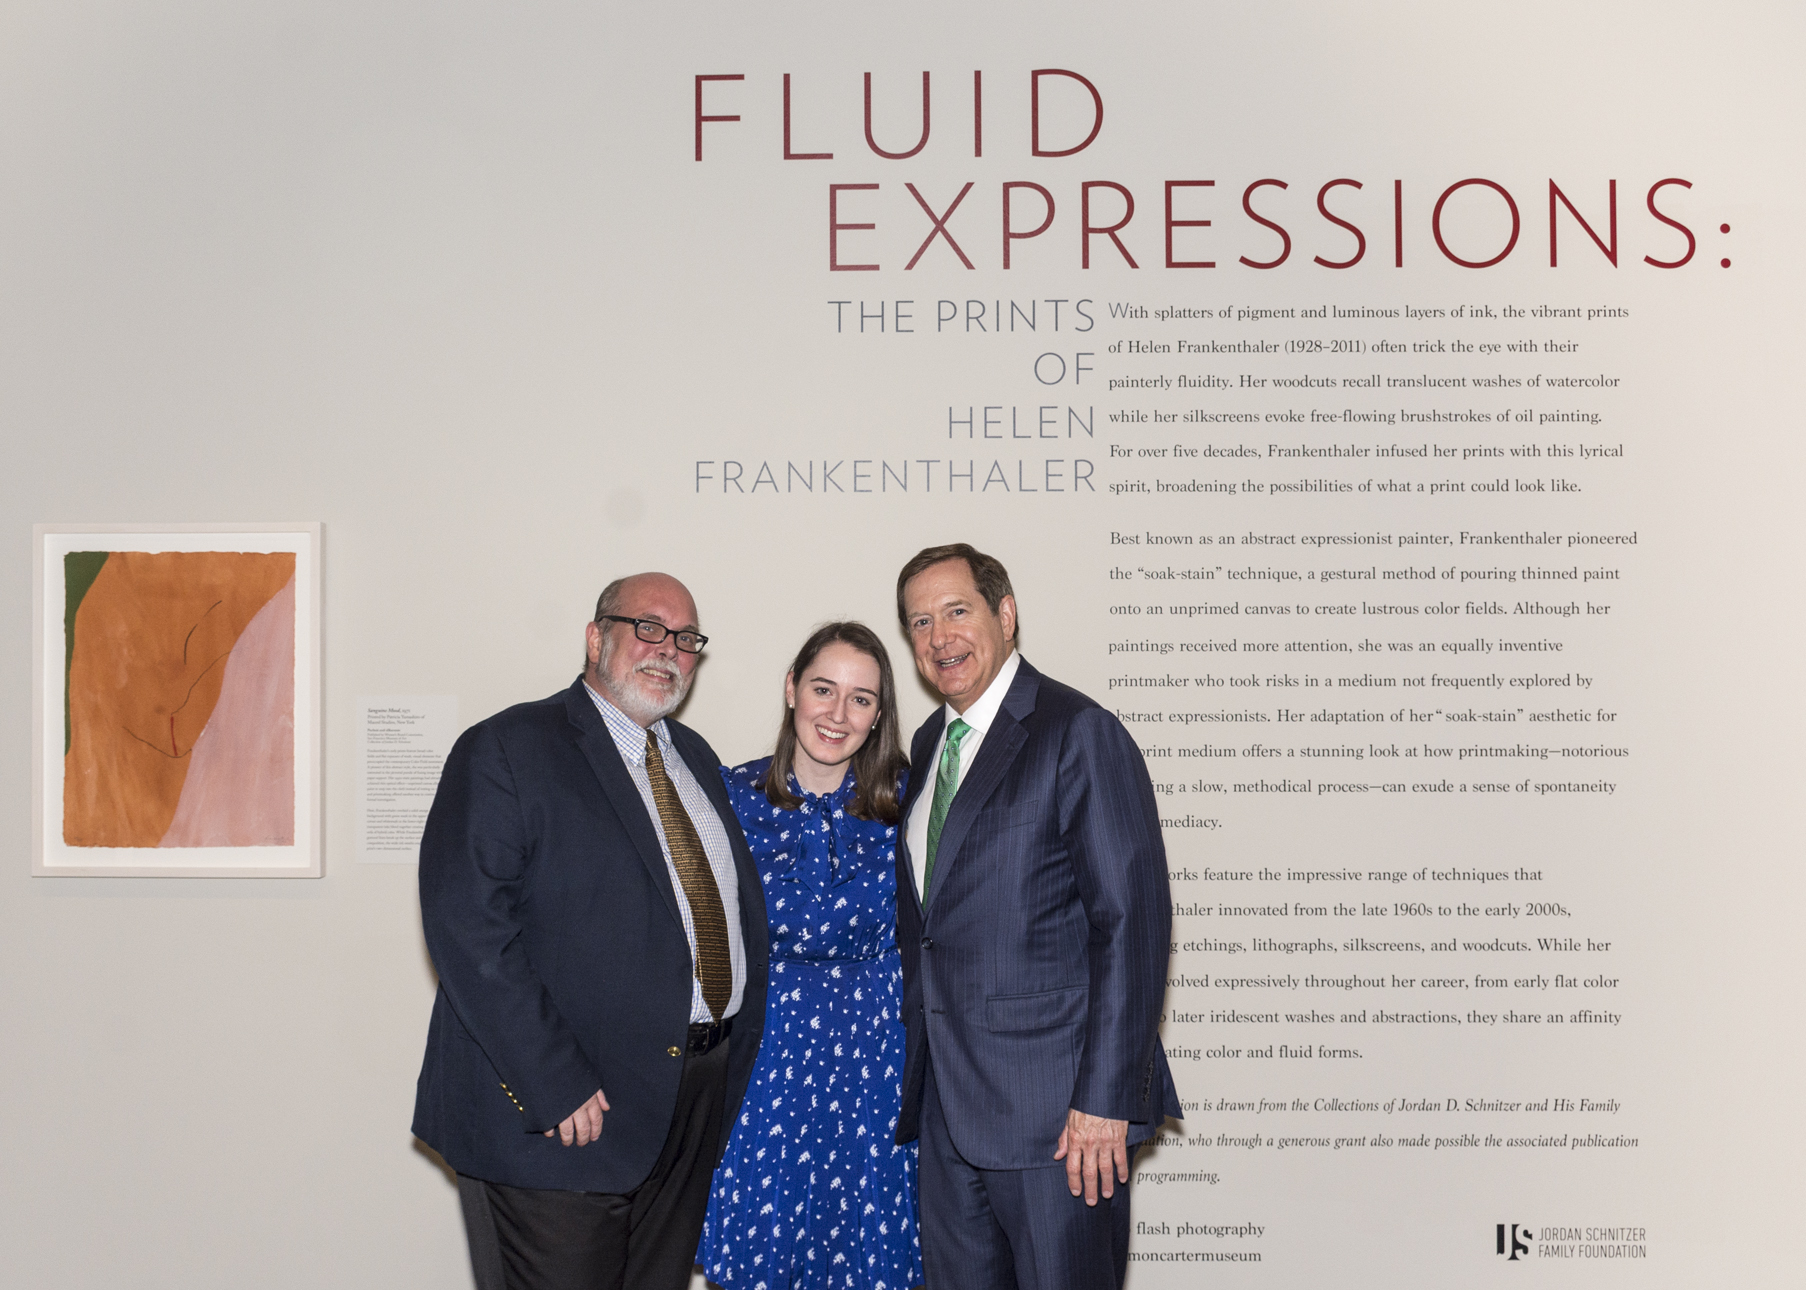 Andrew J. Walker, Director of Amon Carter Museum of Art, Michaela Haffner, Assistant Curator,  and Jordan D. Schnitzer, Collector, at the opening reception of  Fluid Expressions: The Prints of Helen Frankethaler , 2017.